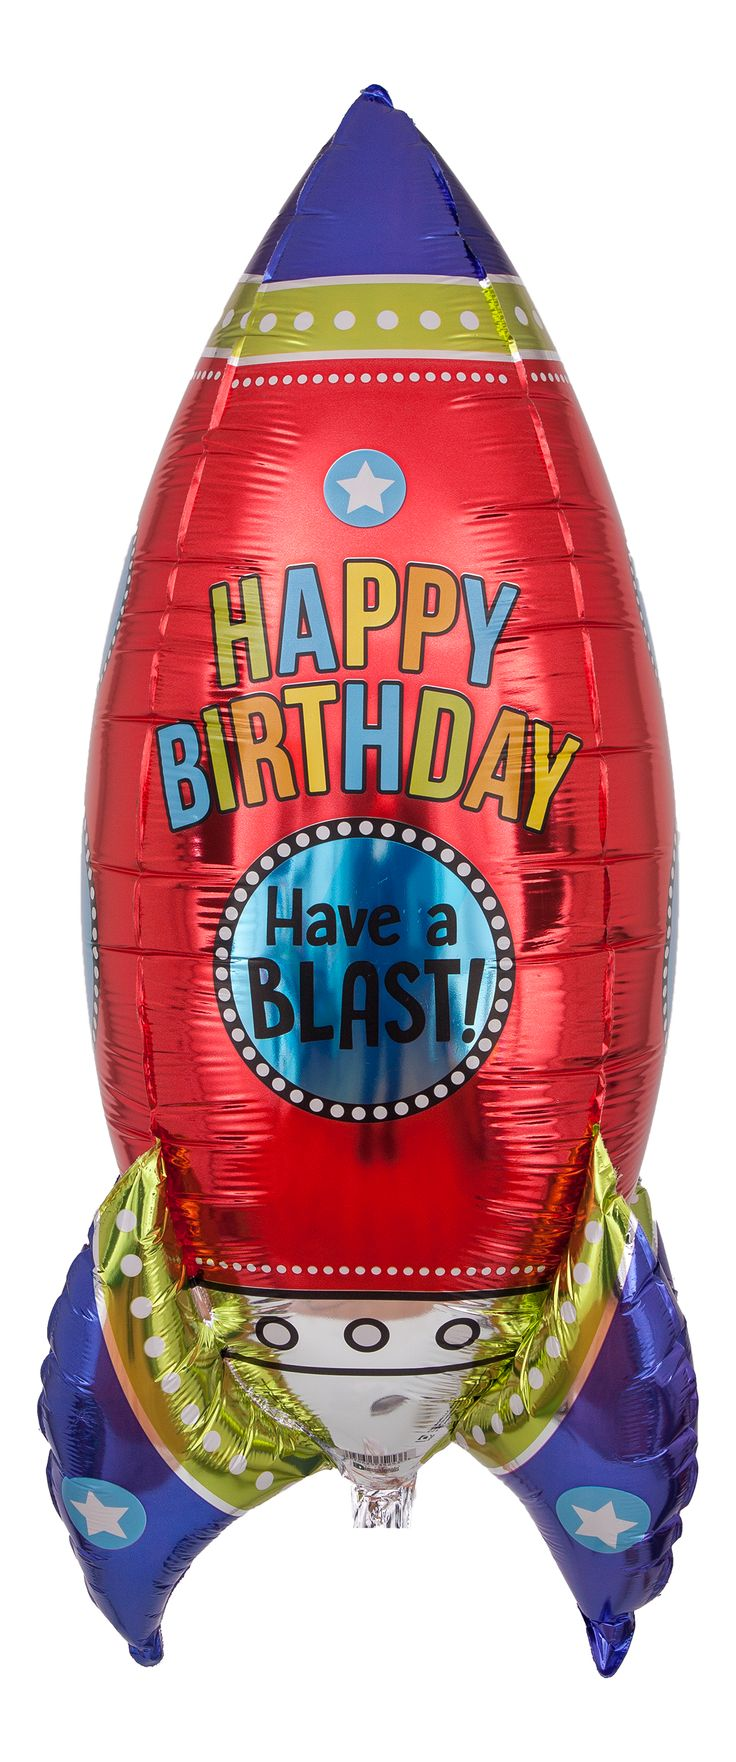 "Happy Birthday Ballon ""Rakete - Have a Blast!"""